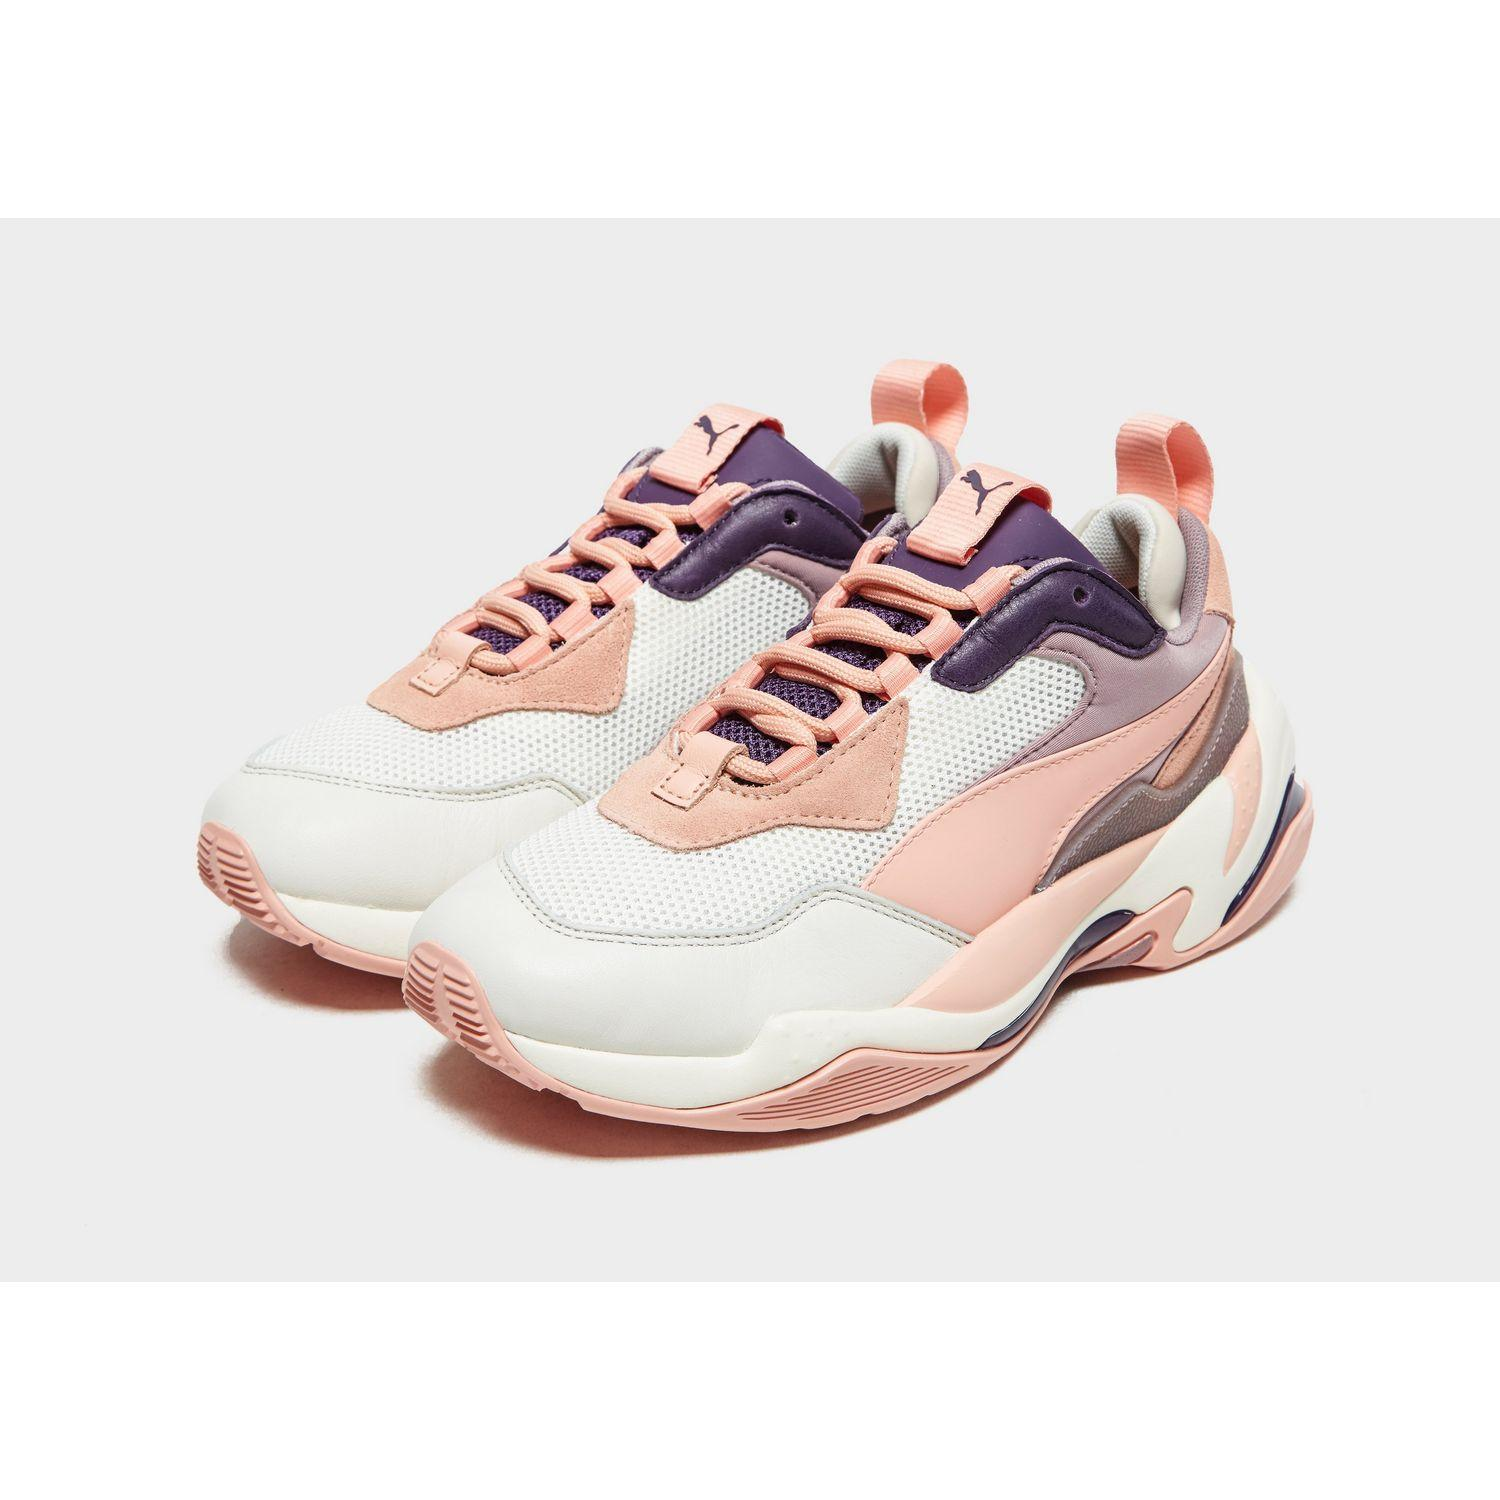 PUMA Leather Thunder Spectra in White